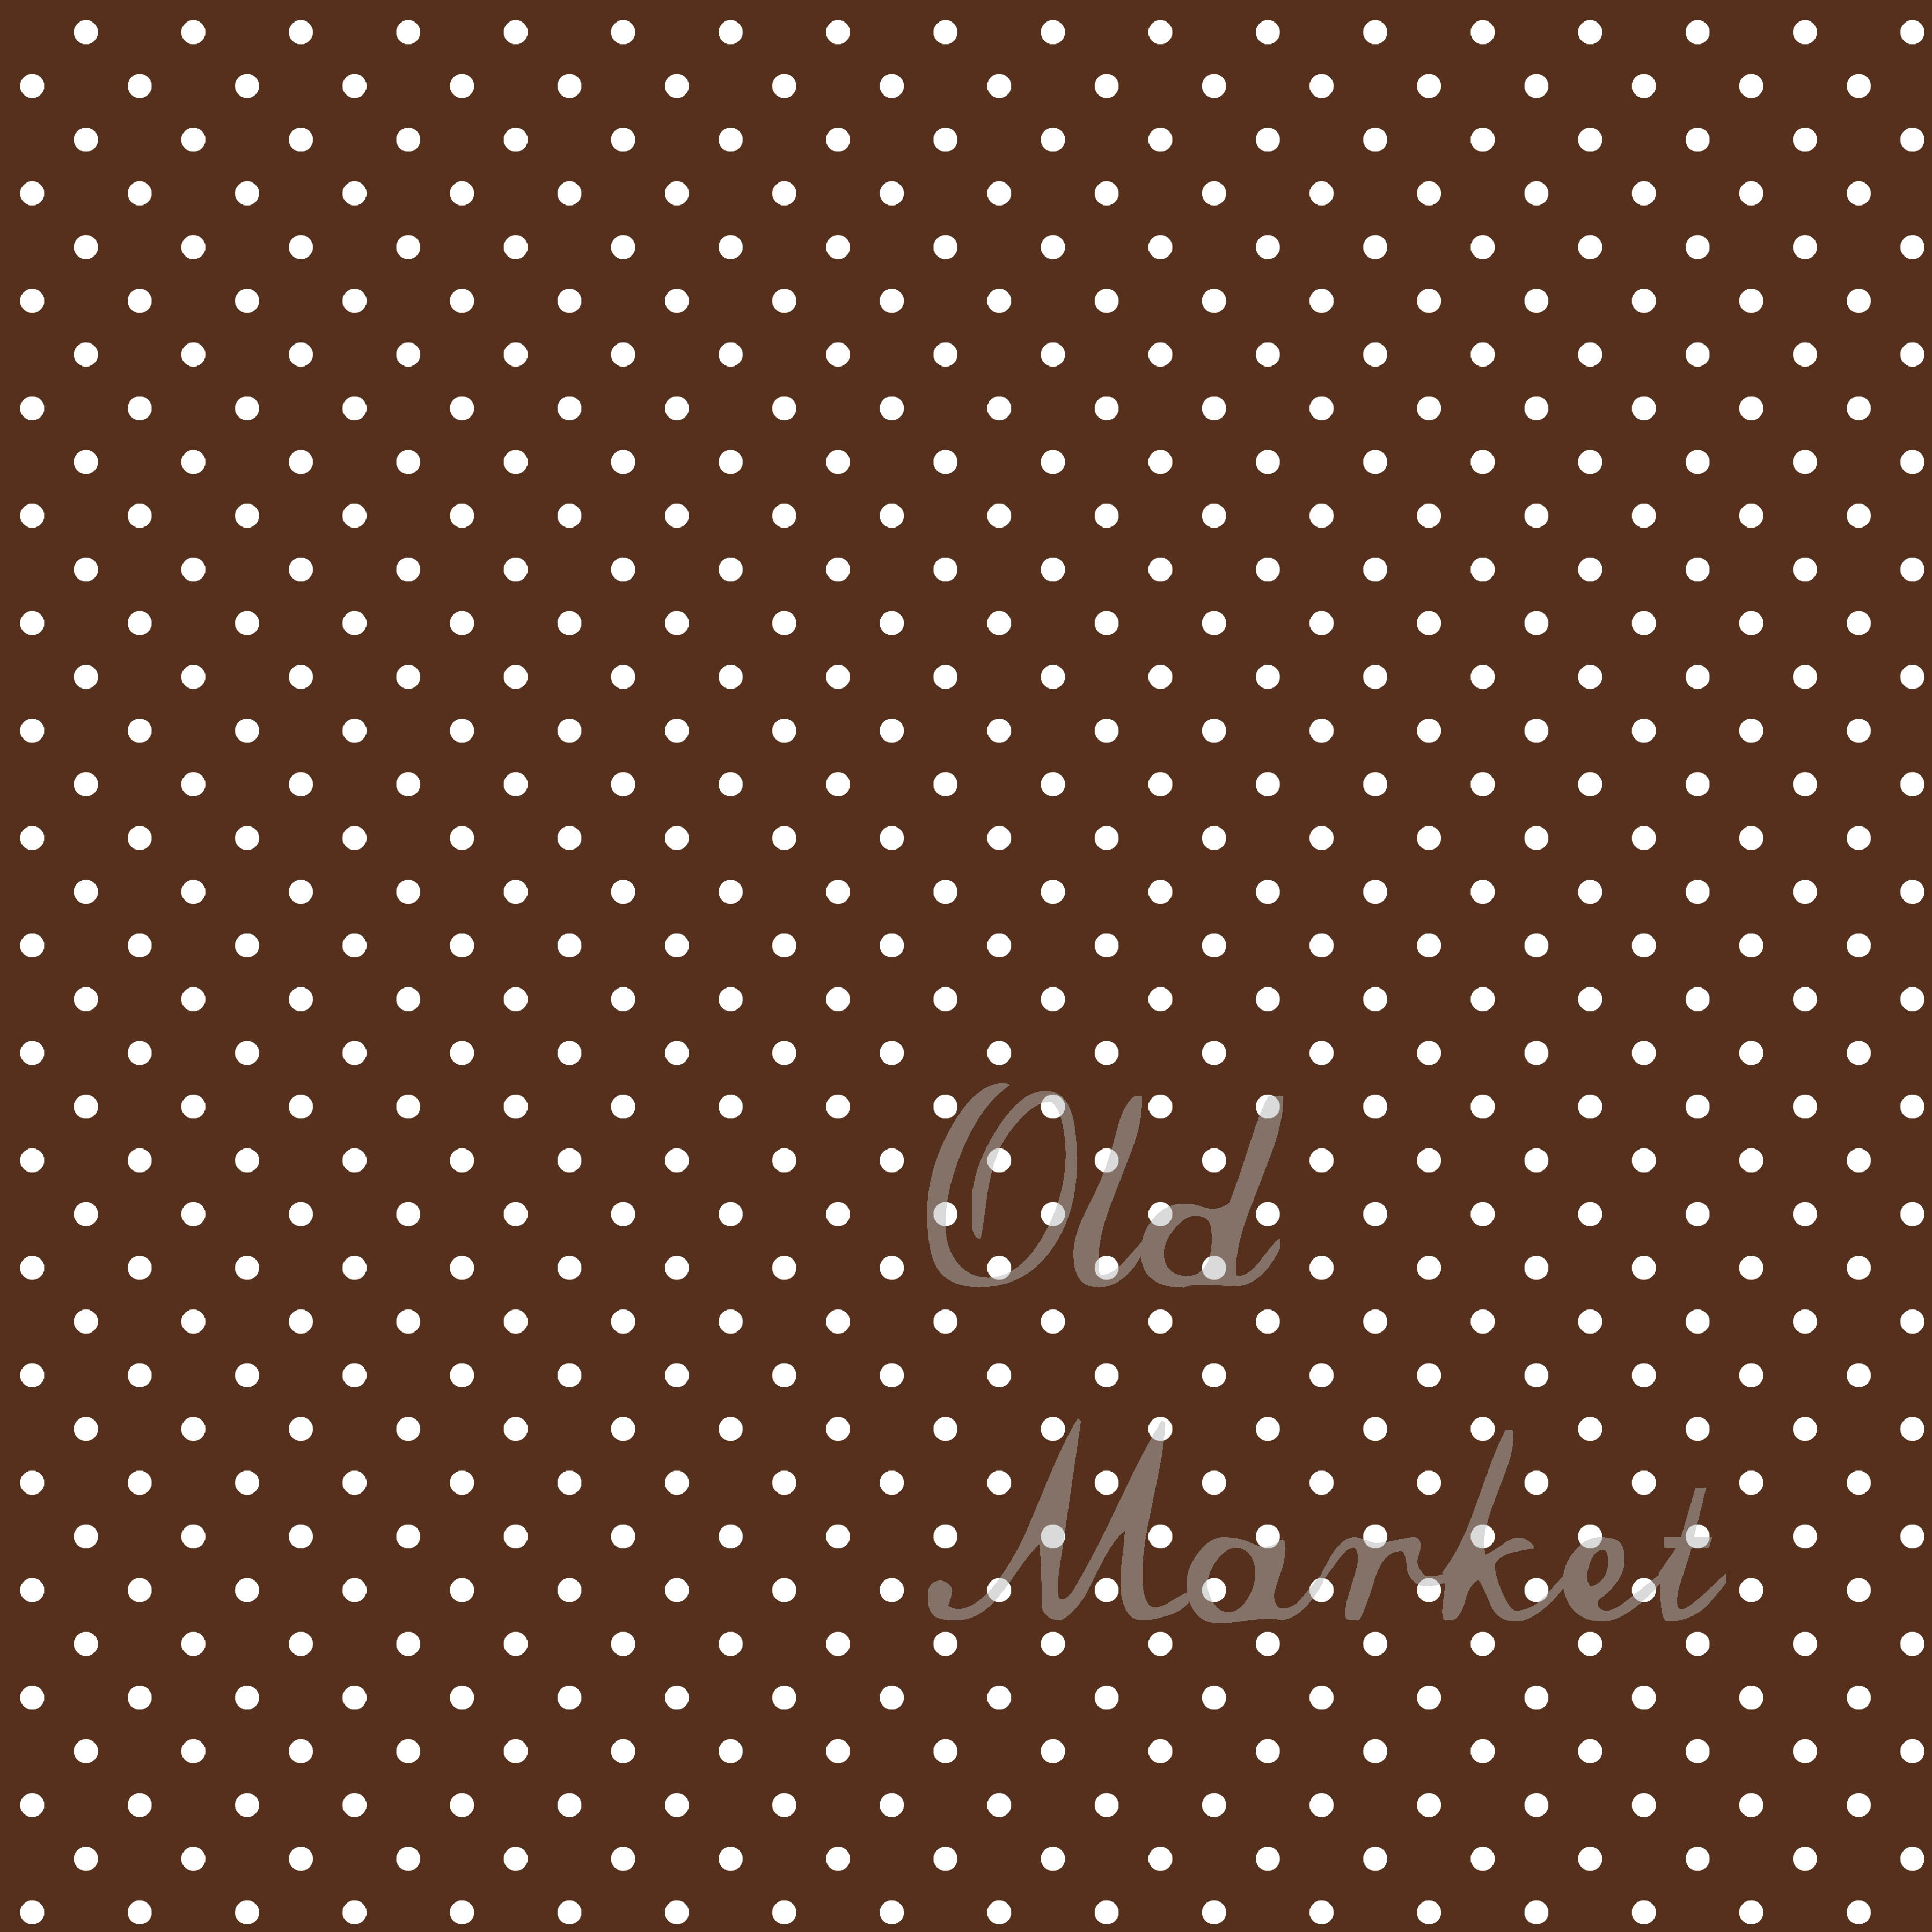 Polka Dots Digital Paper Graphic Backgrounds By oldmarketdesigns - Image 2